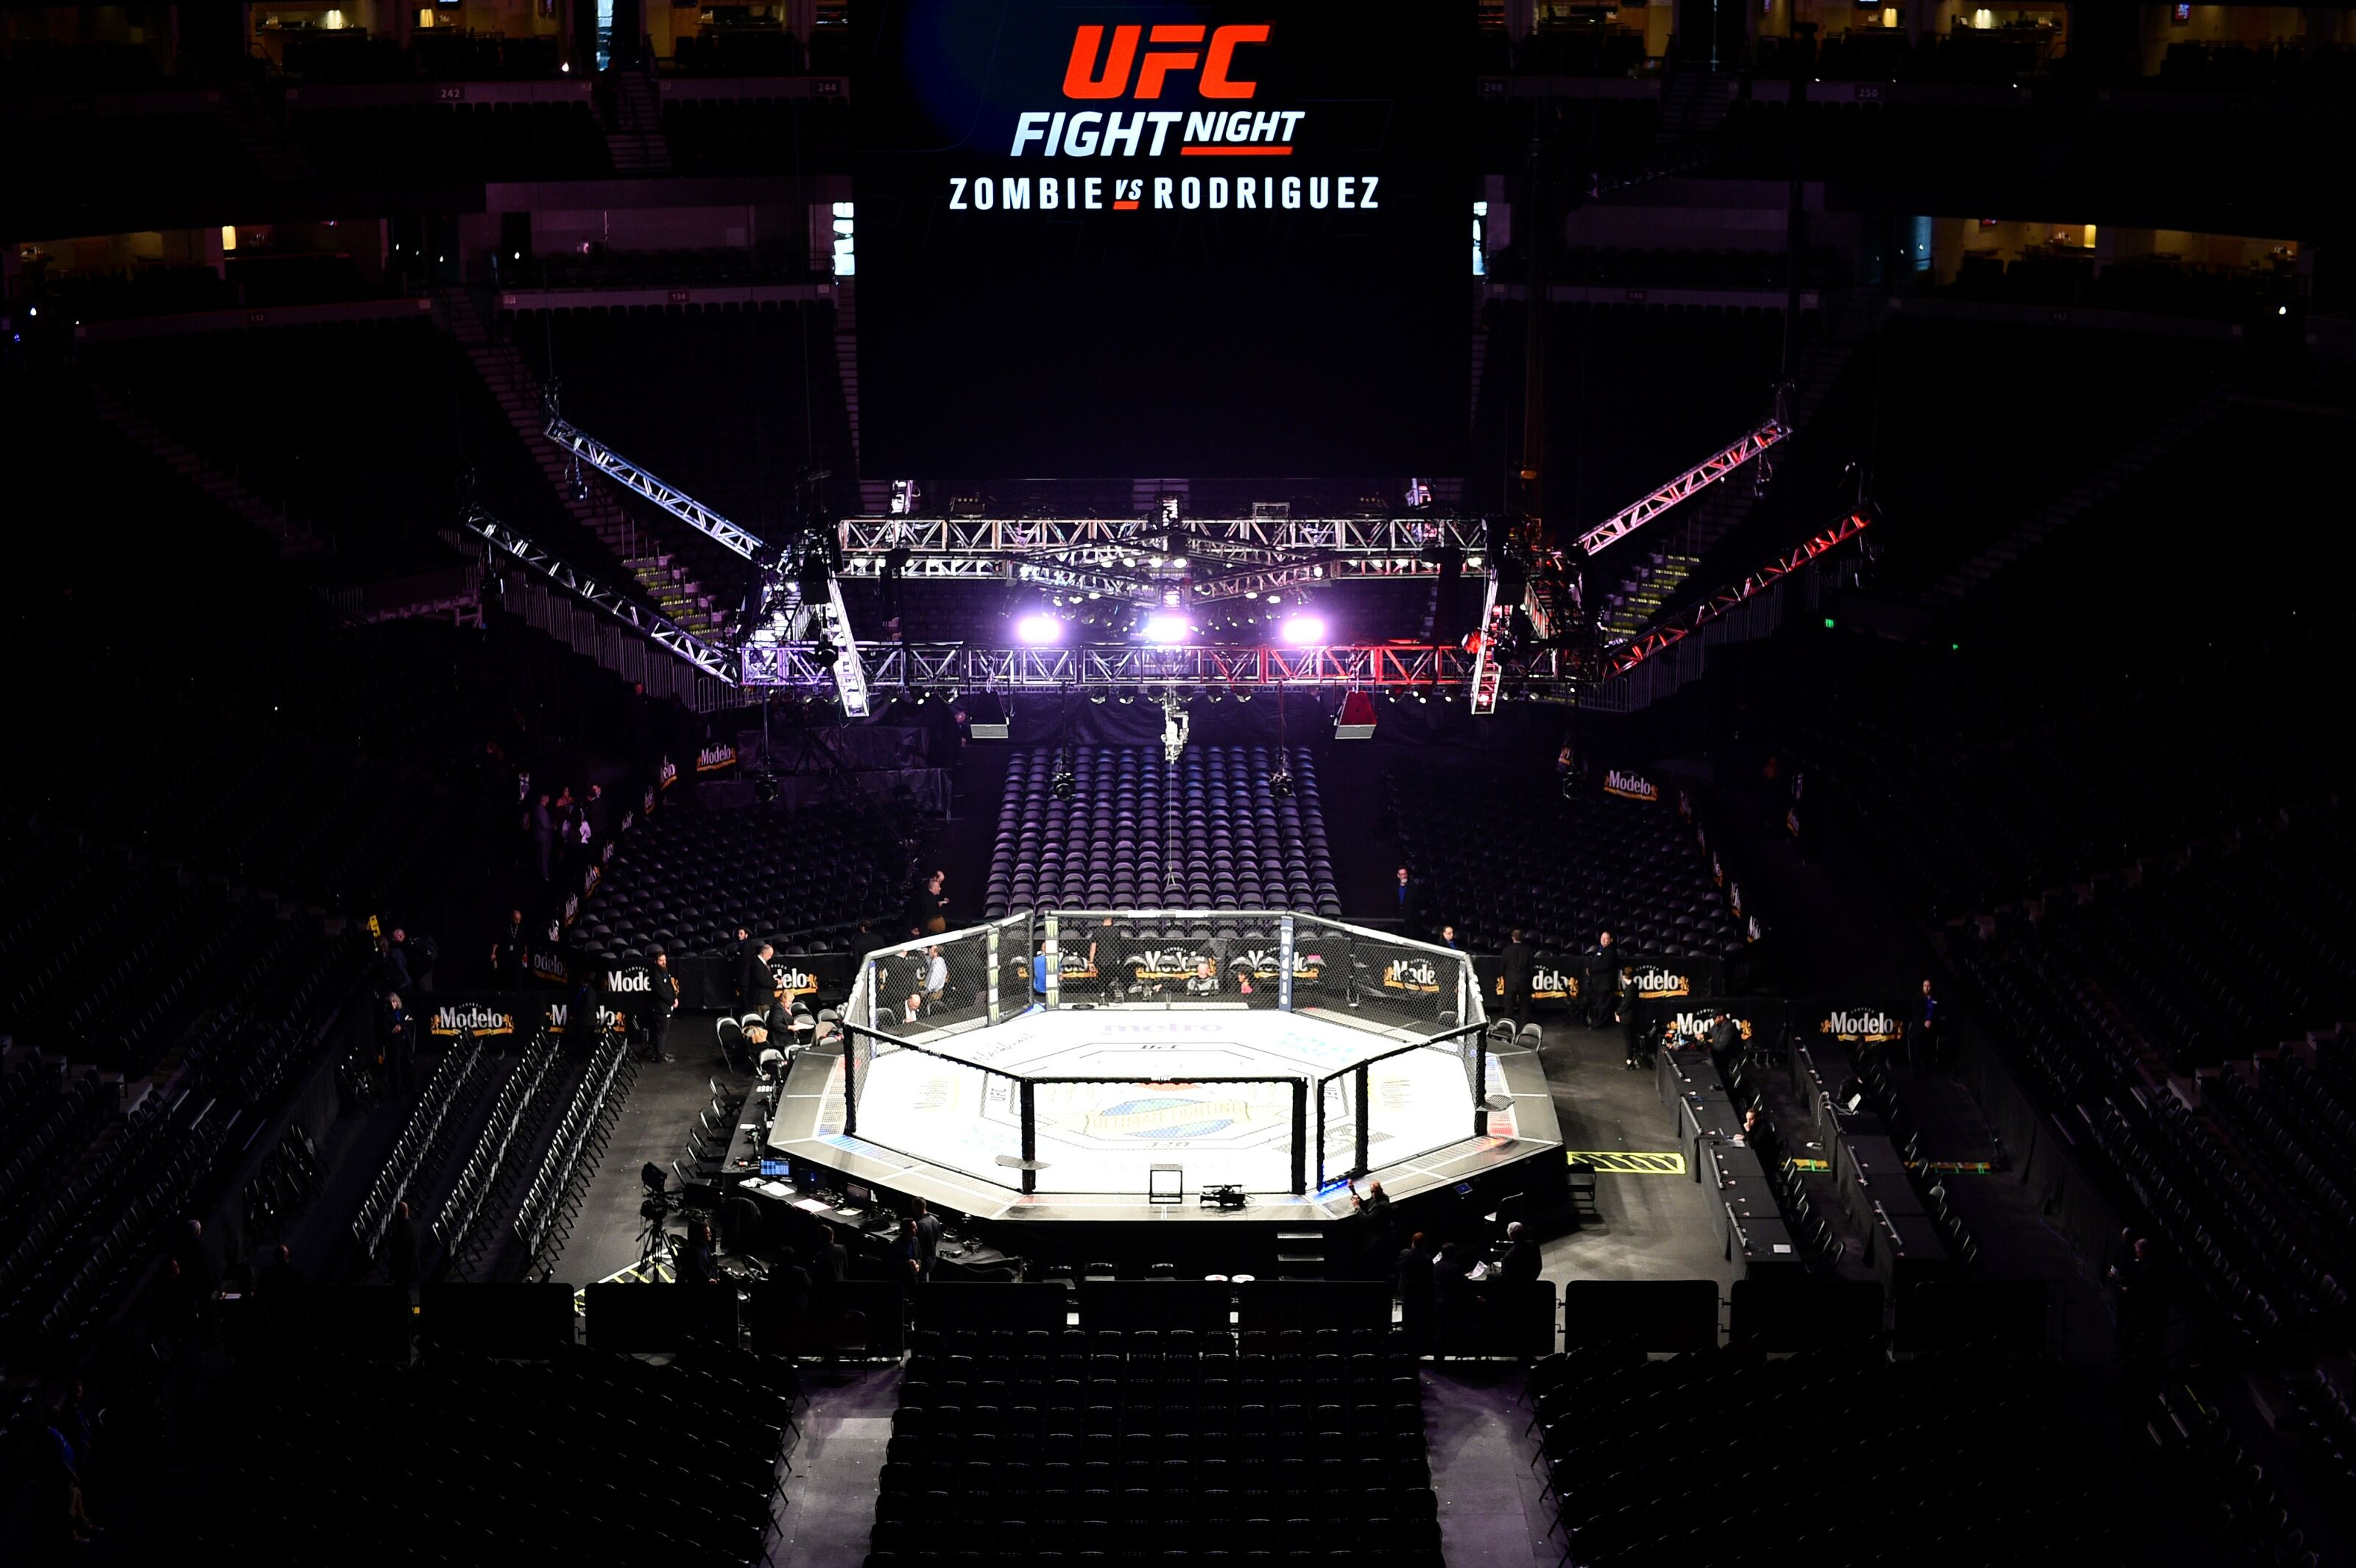 DENVER, CO - NOVEMBER 10: A general view of the Octagon prior to the UFC Fight Night event inside Pepsi Center on November 10, 2018 in Denver, Colorado. (Photo by Chris Unger/Zuffa LLC/Zuffa LLC via Getty Images)